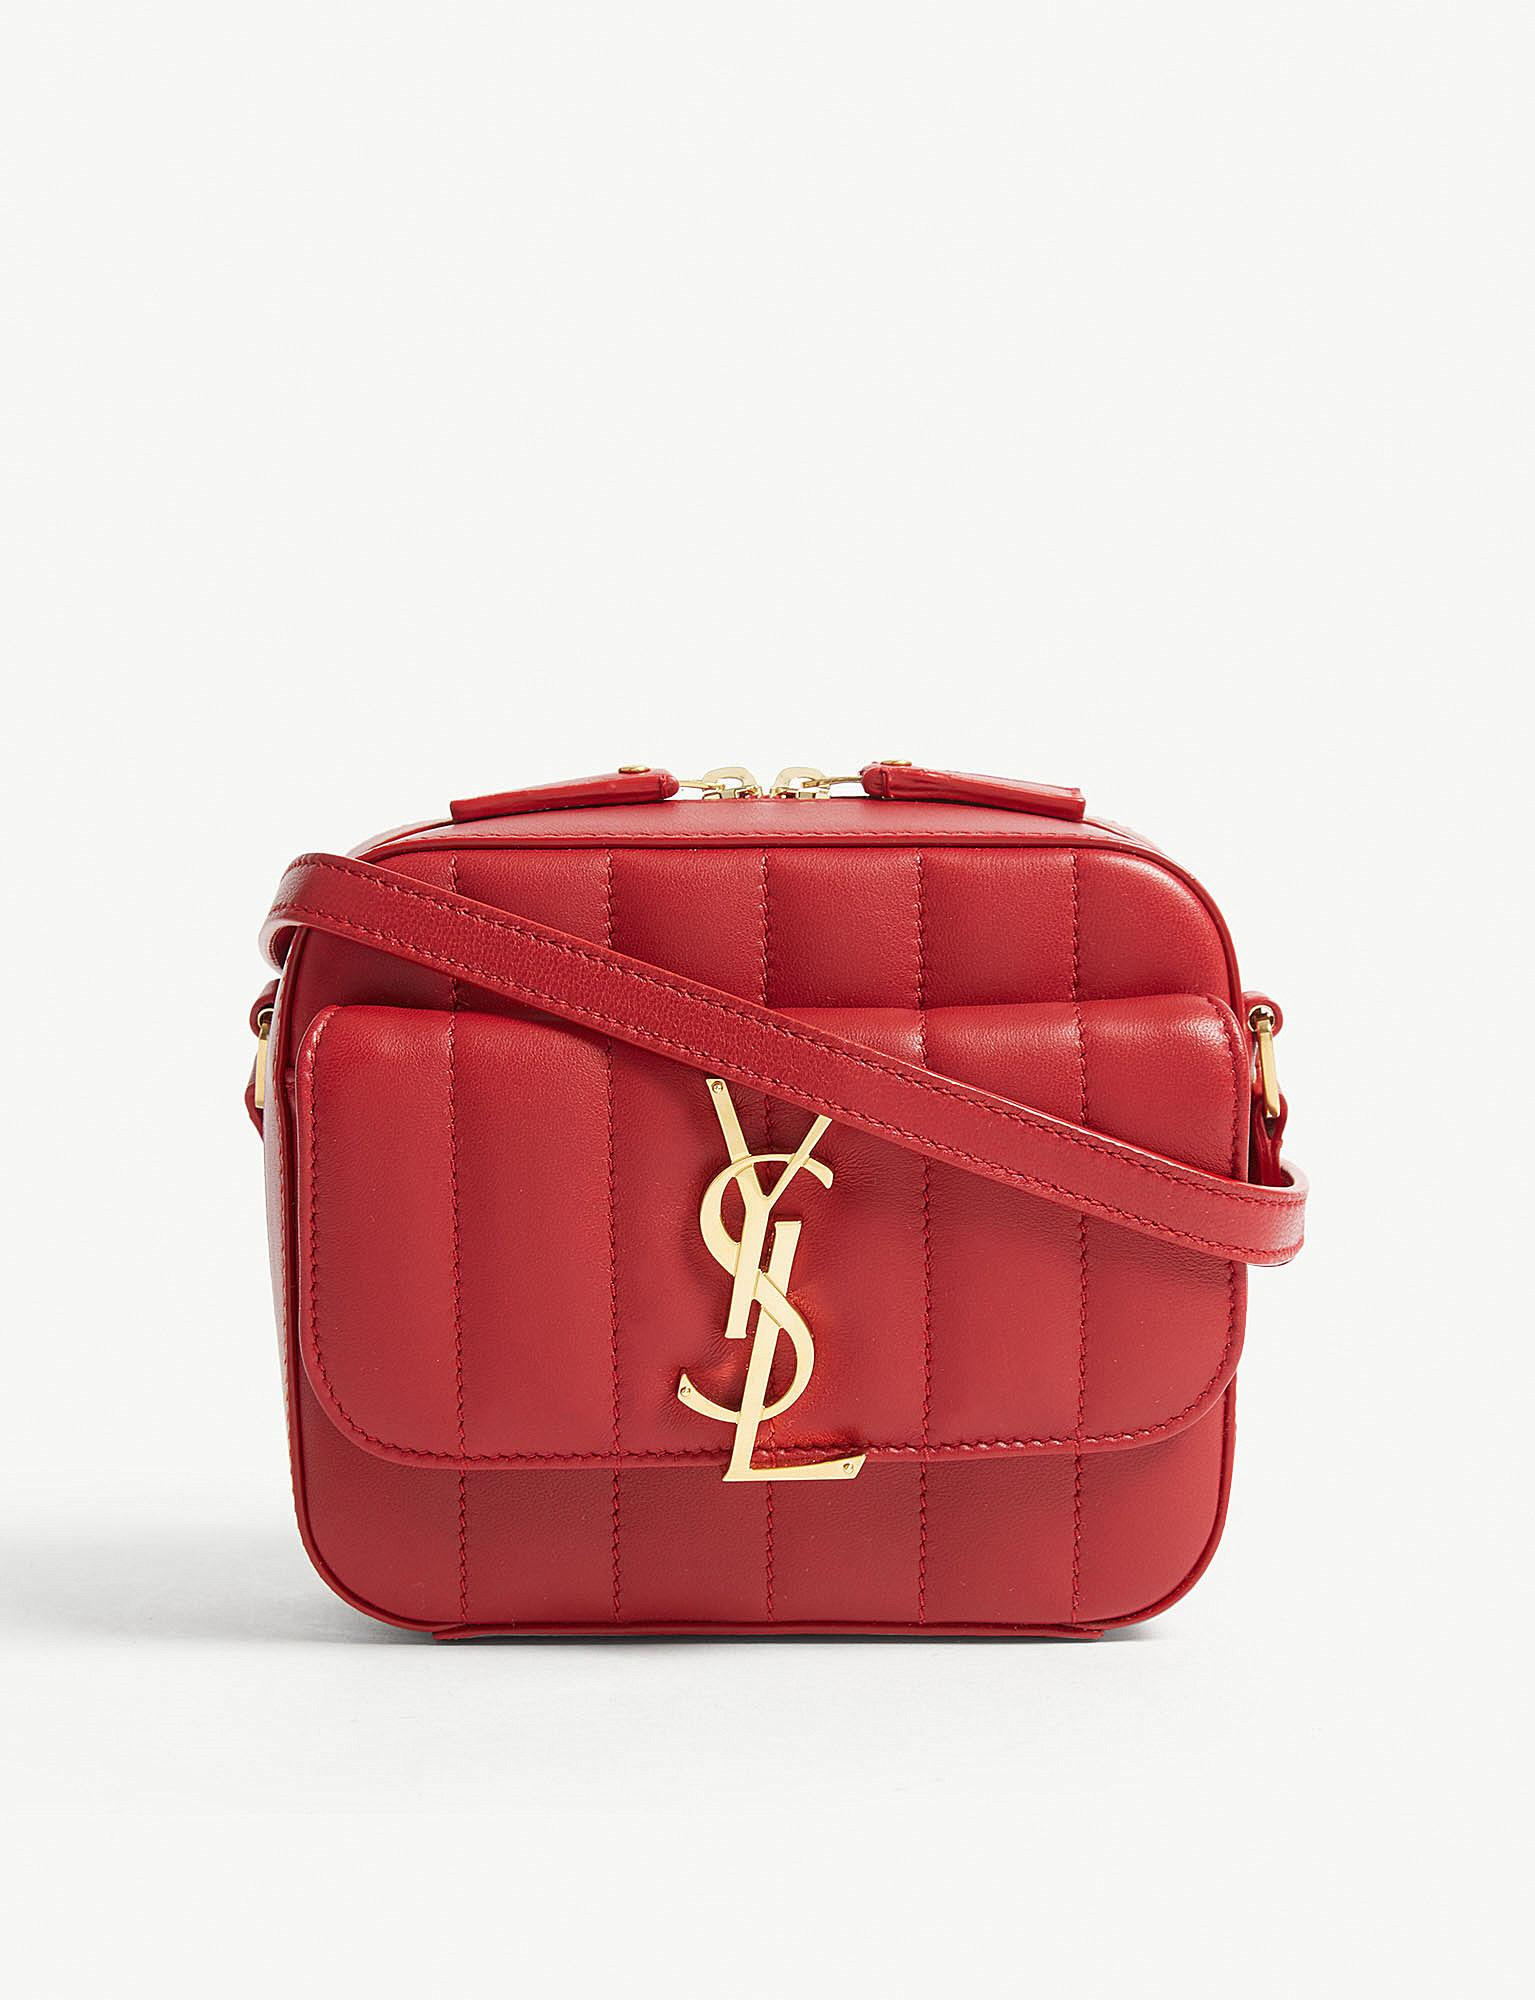 aafdddcd61568e Lyst - Saint Laurent Vicky Toy Quilted Leather Camera Bag in Red